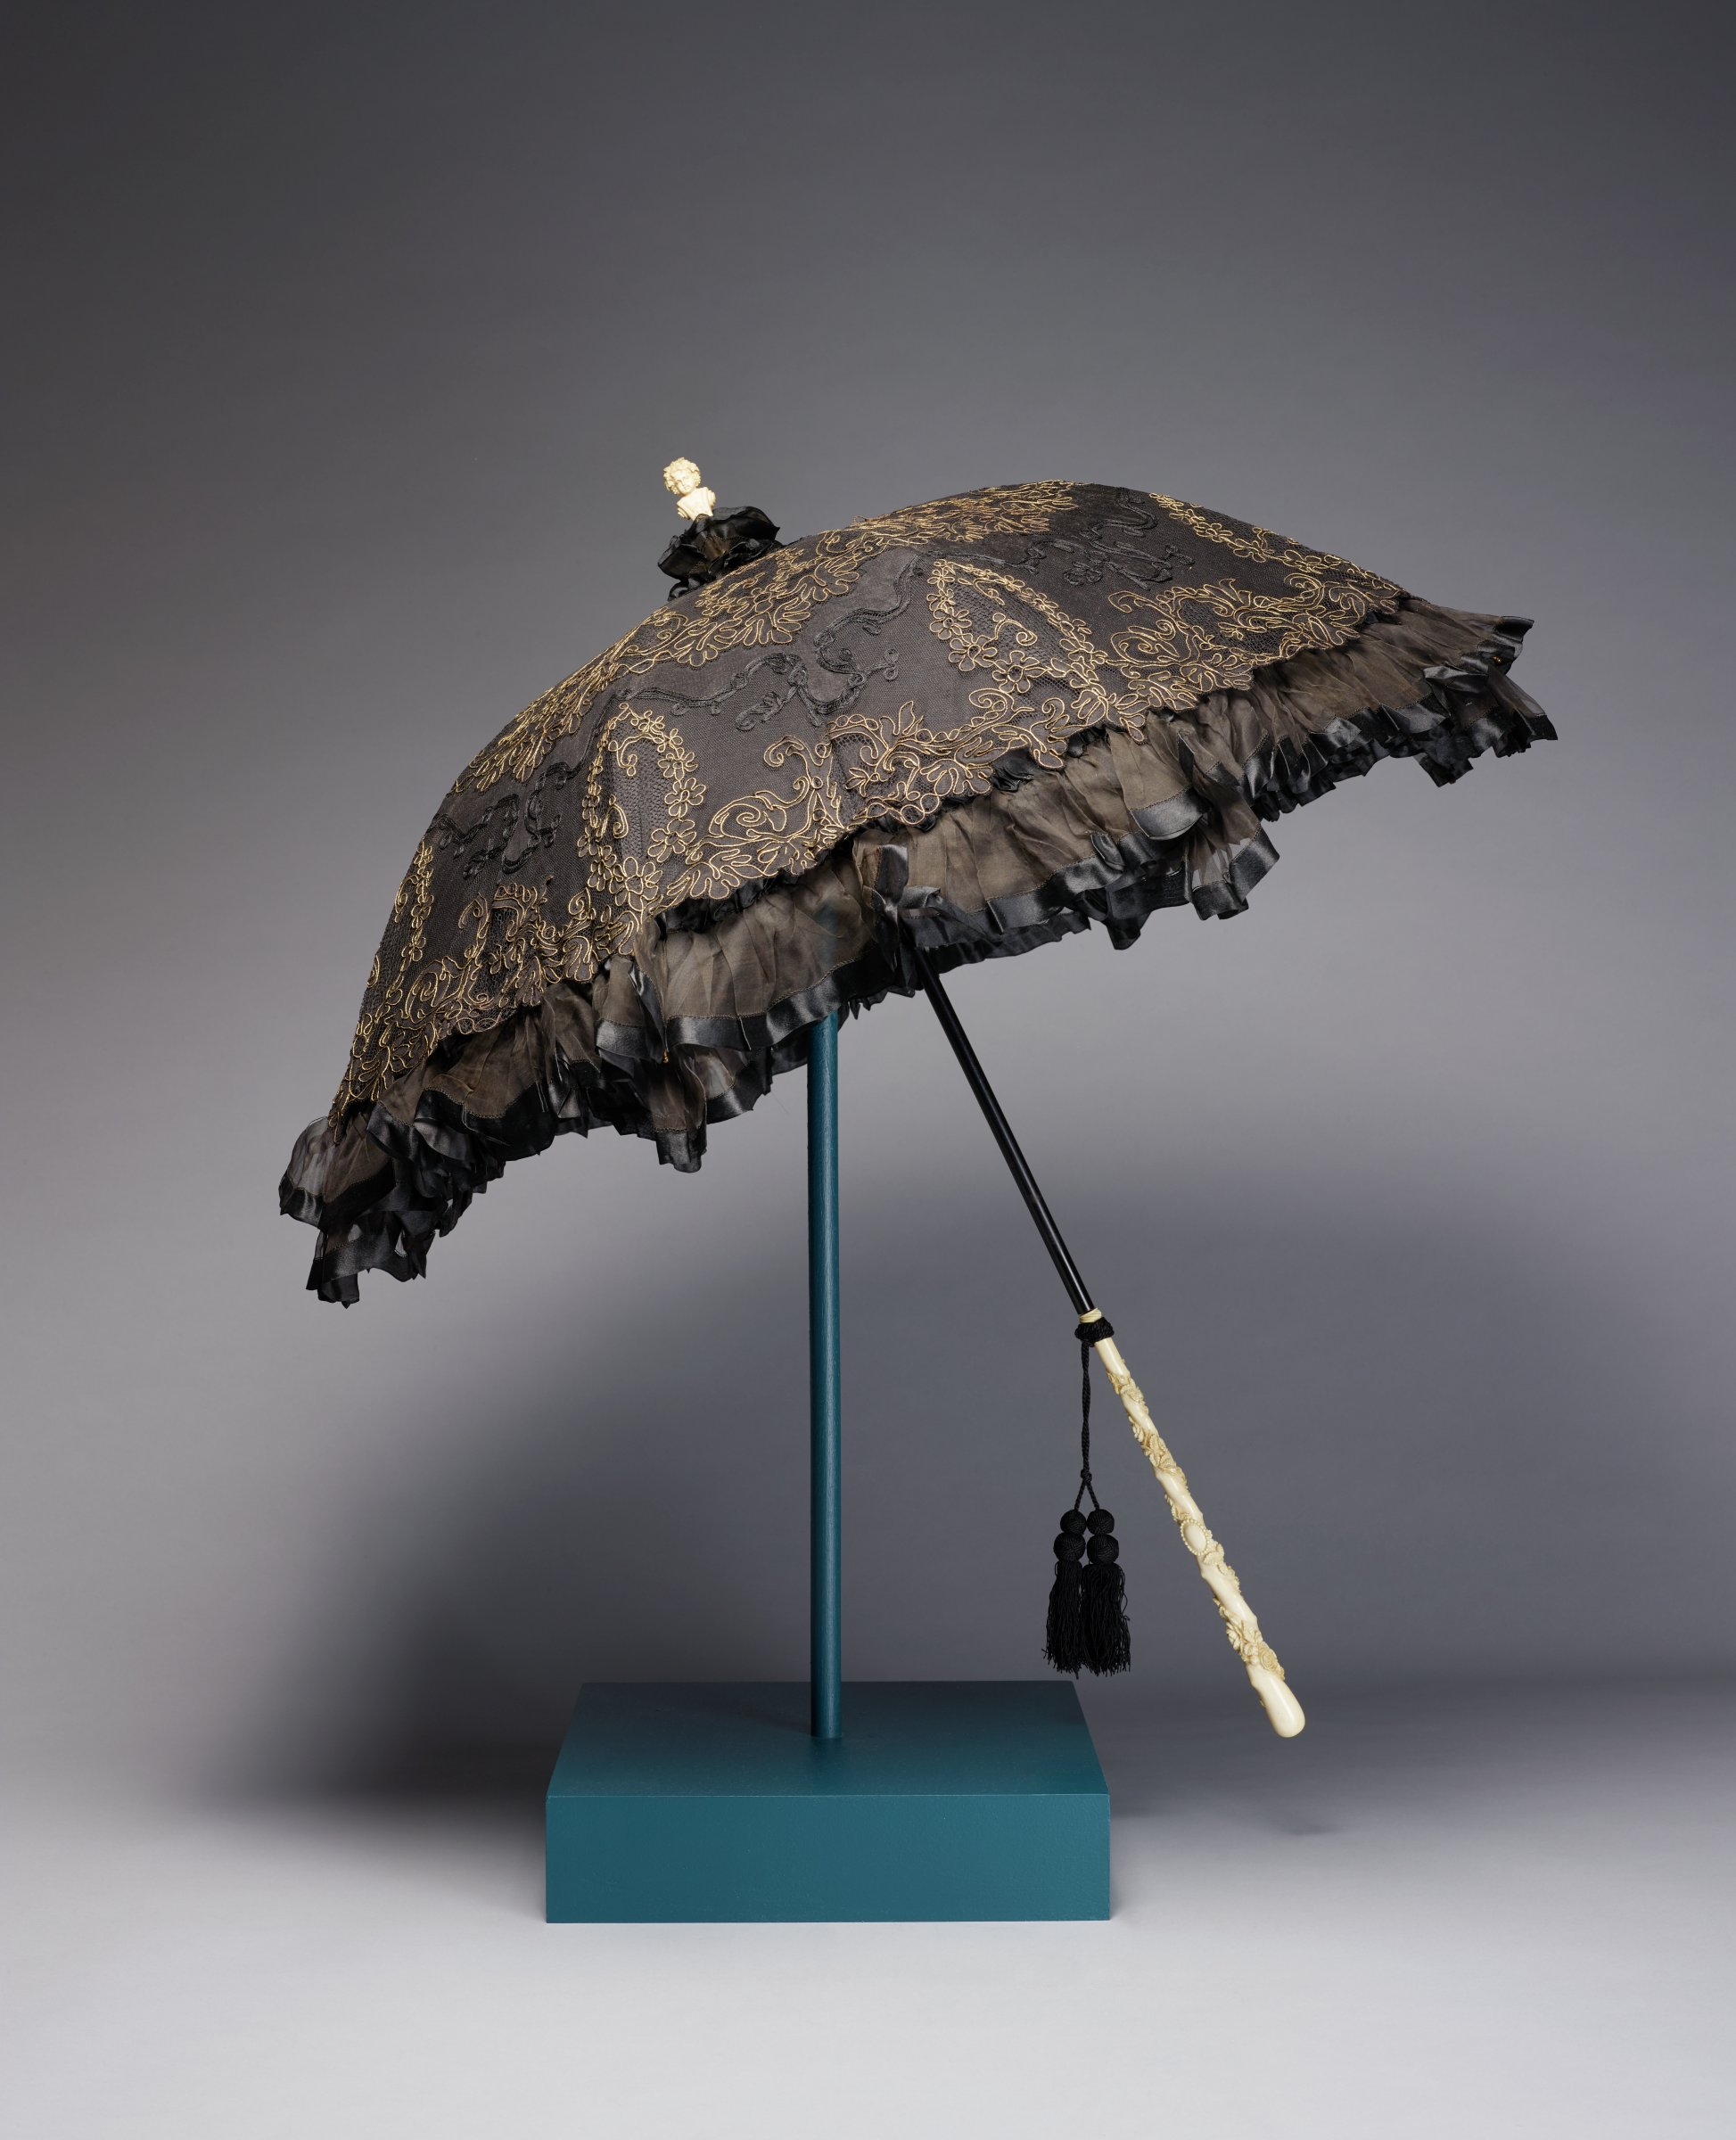 Ladies' parasol of black silk taffeta and lined with black silk, the canopy overlaid with black tulle, cut to reveal a subtle floral design with applied black cording and gold thread applied in a pattern of stylized leafy floral motifs, with ruffled edge with black satin banding and tuft of black silk at the top, the tapered handle/stick of ivory carved in relief with a floral garland that winds around the stick, the spike in the form of the bust of a bacchanalian figure likewise in carved ivory, with two tassels attached to the stick with black twine, the frame of black and gold tone metal.